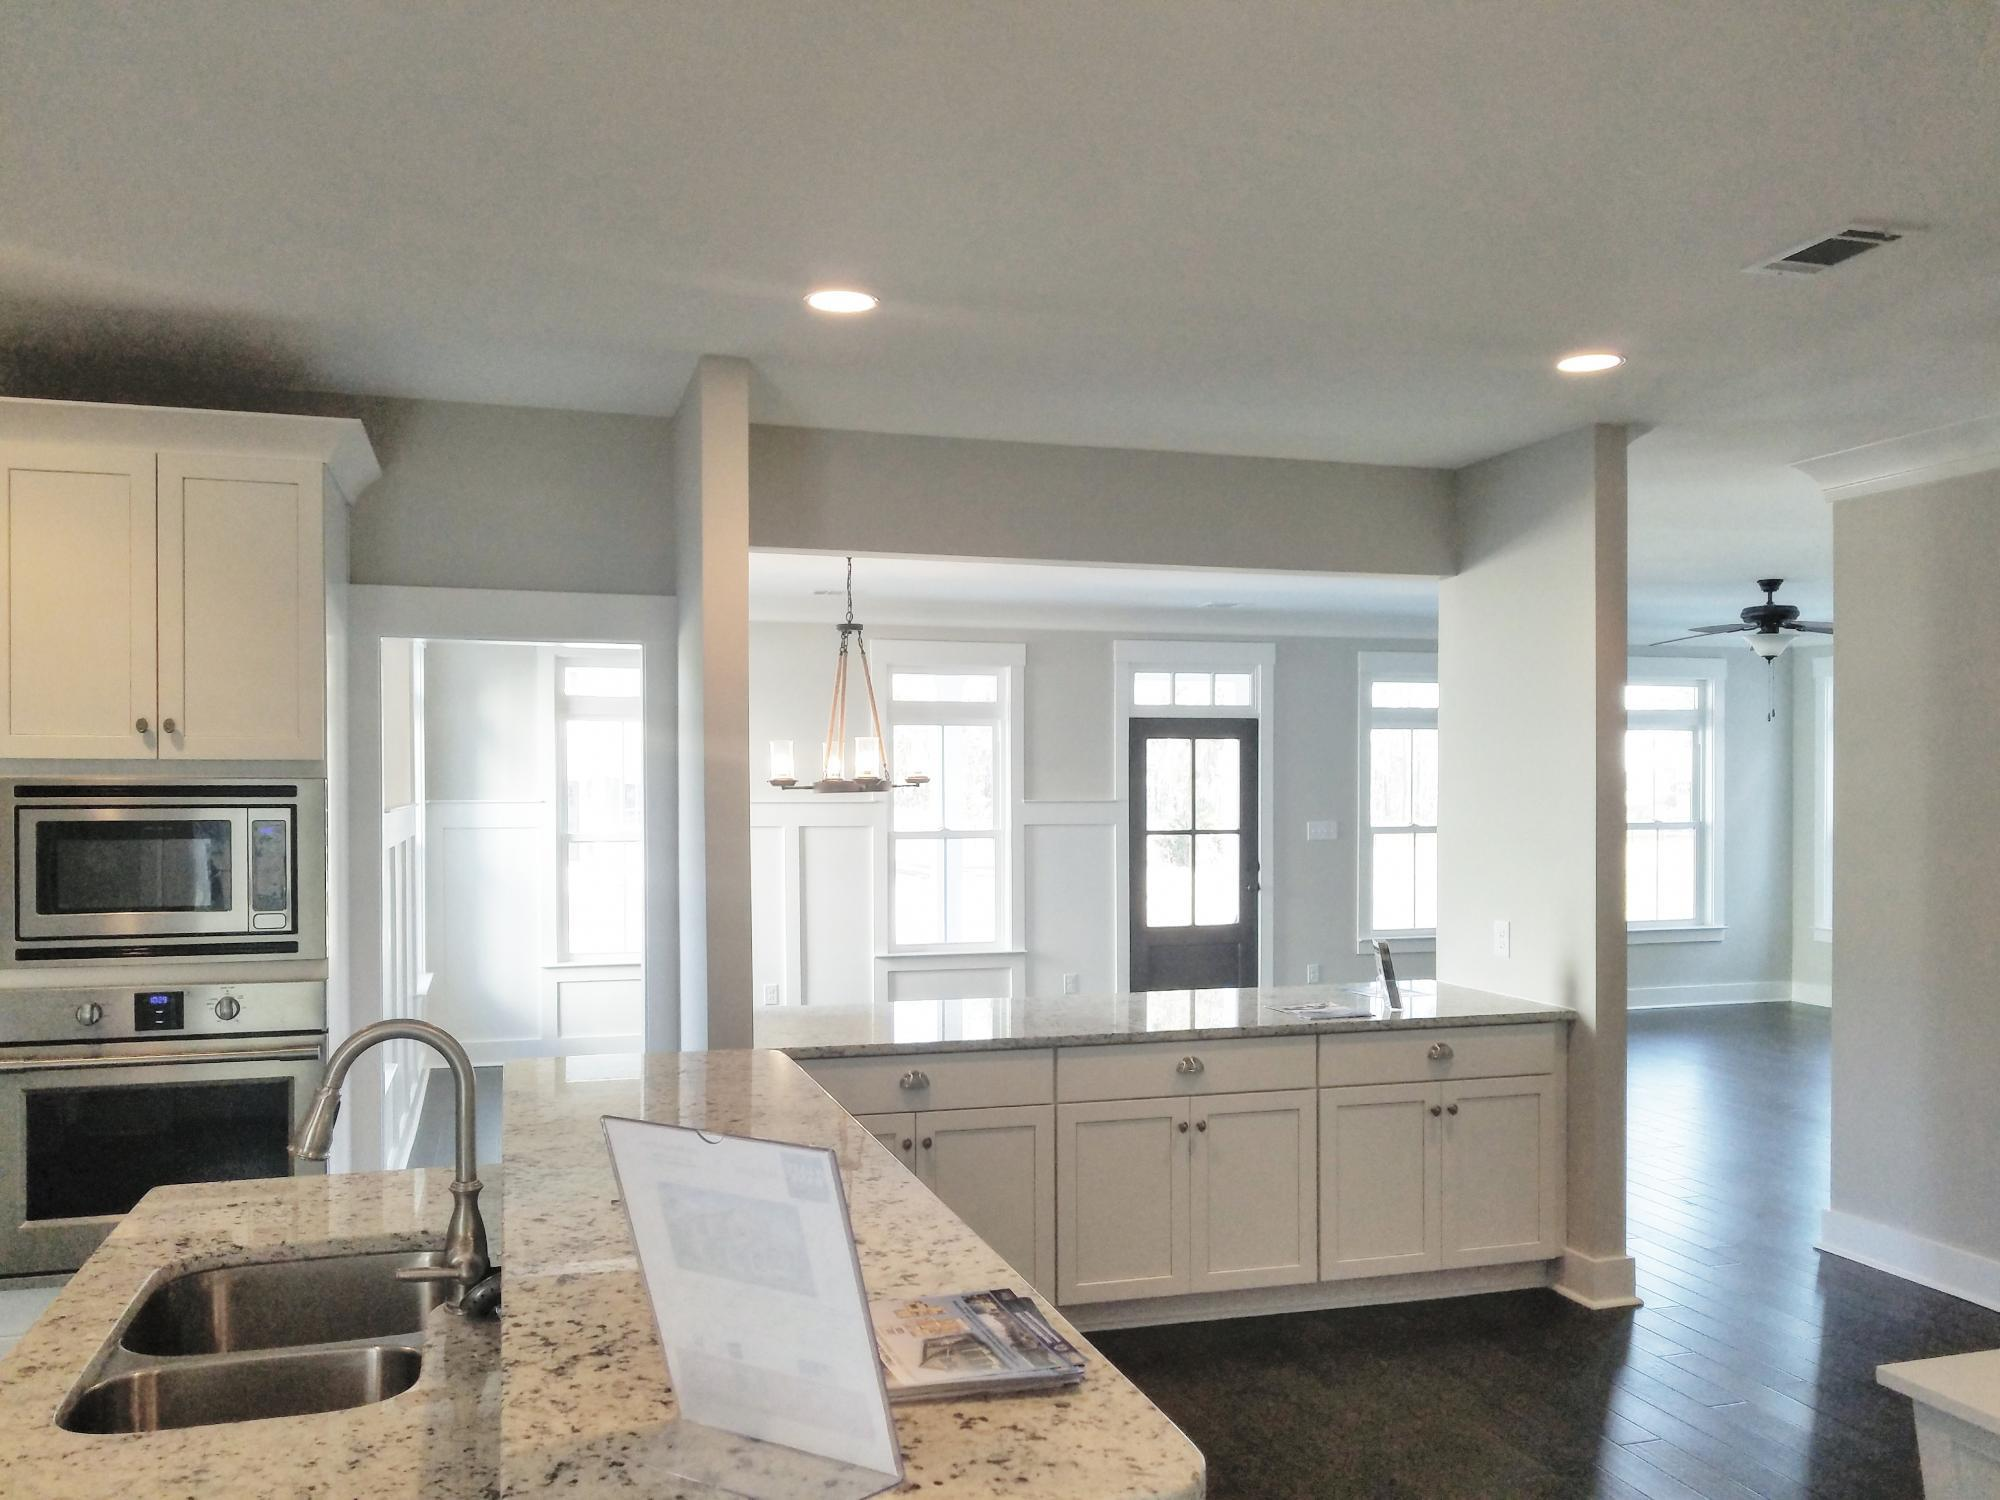 Kitchen featured in the Kiawah By Konter Quality Homes in Savannah, GA